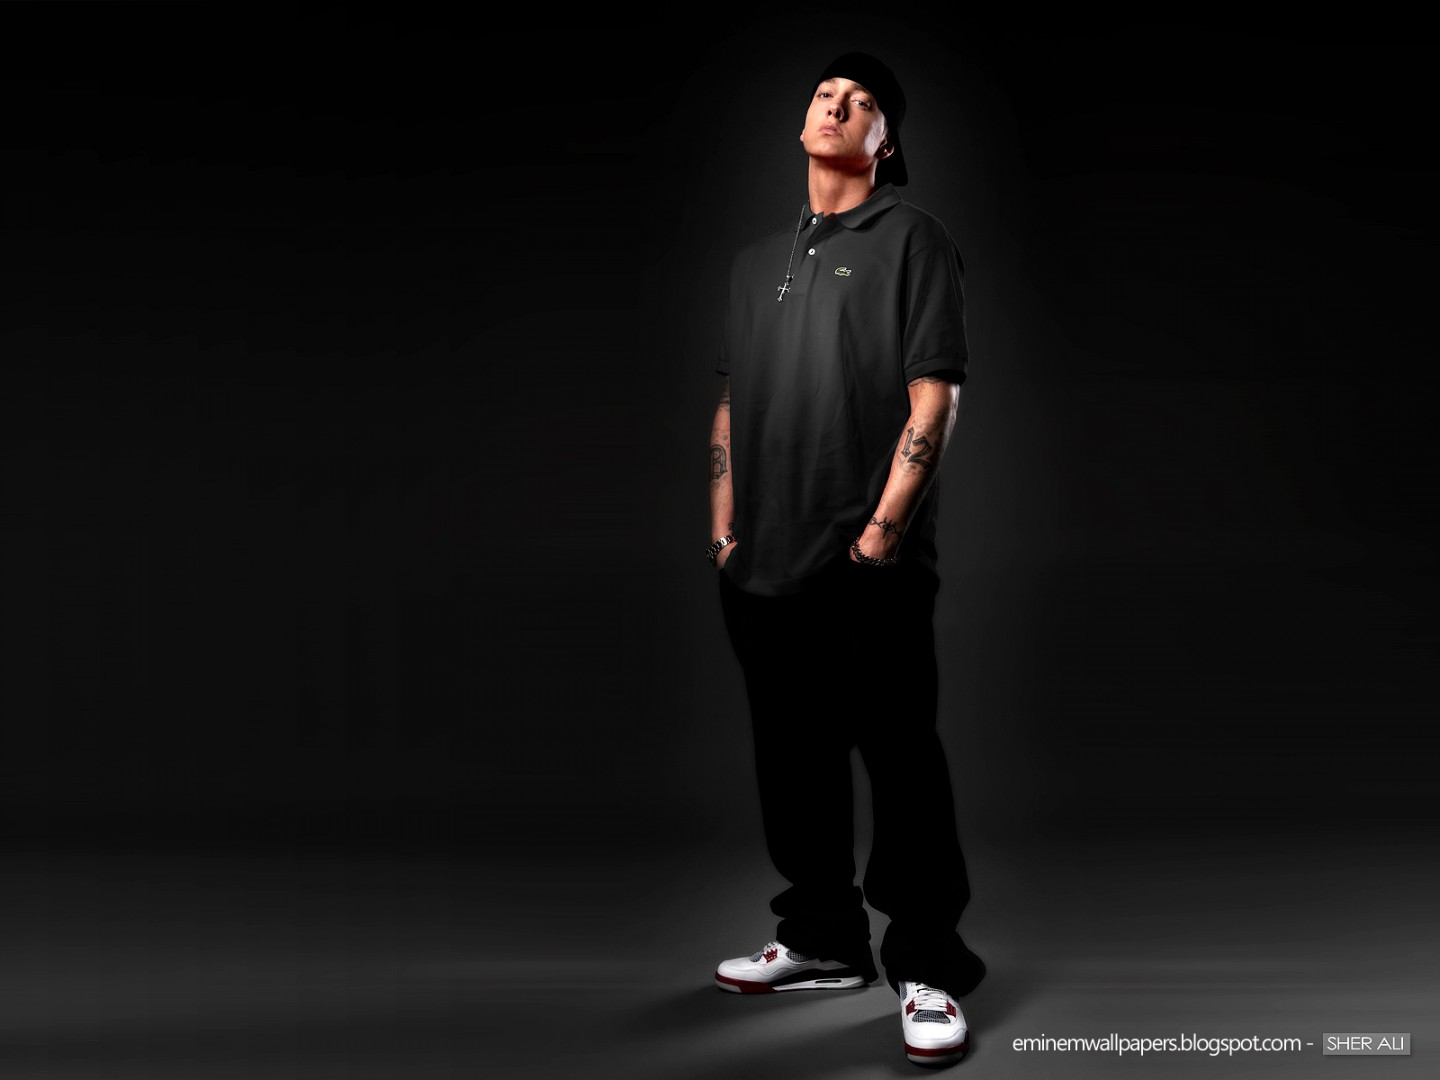 eminem wallpapers 23jpg 1440x1080